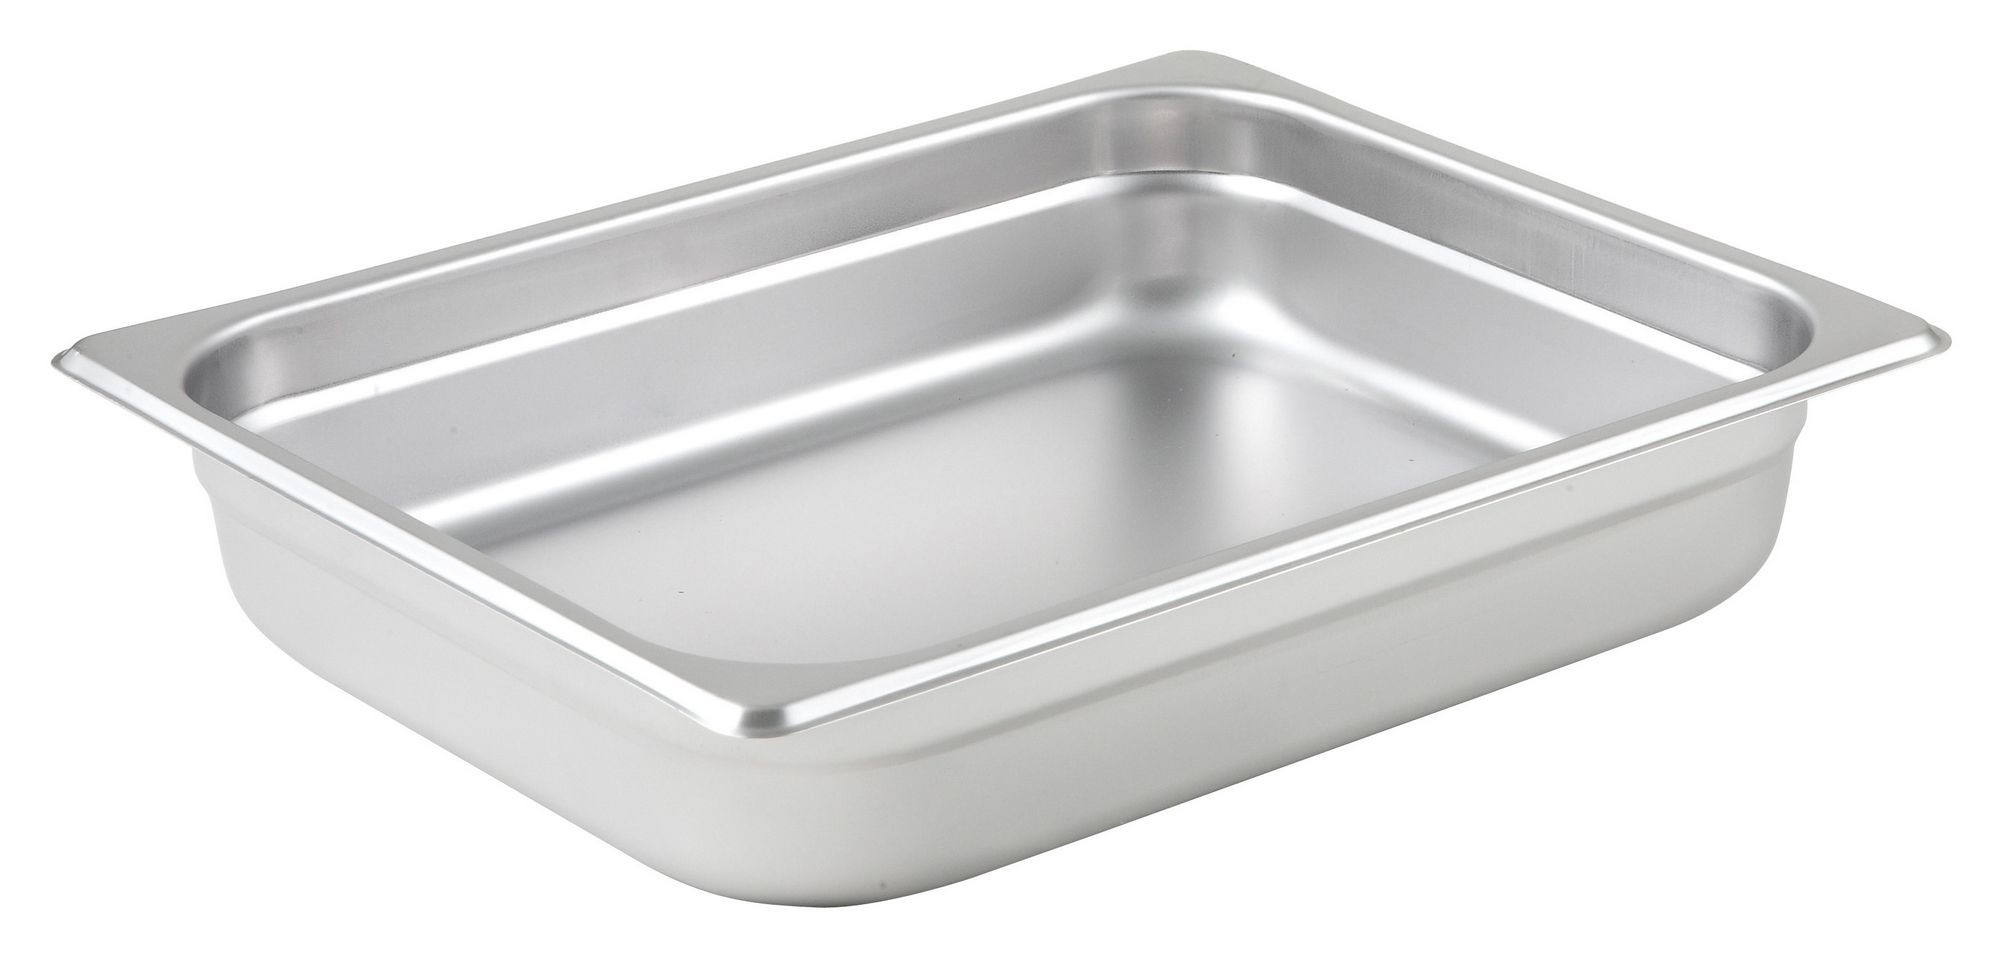 Winco Half Size Anti-Jamming Steam Table Pan (24 Gauge, 2.5